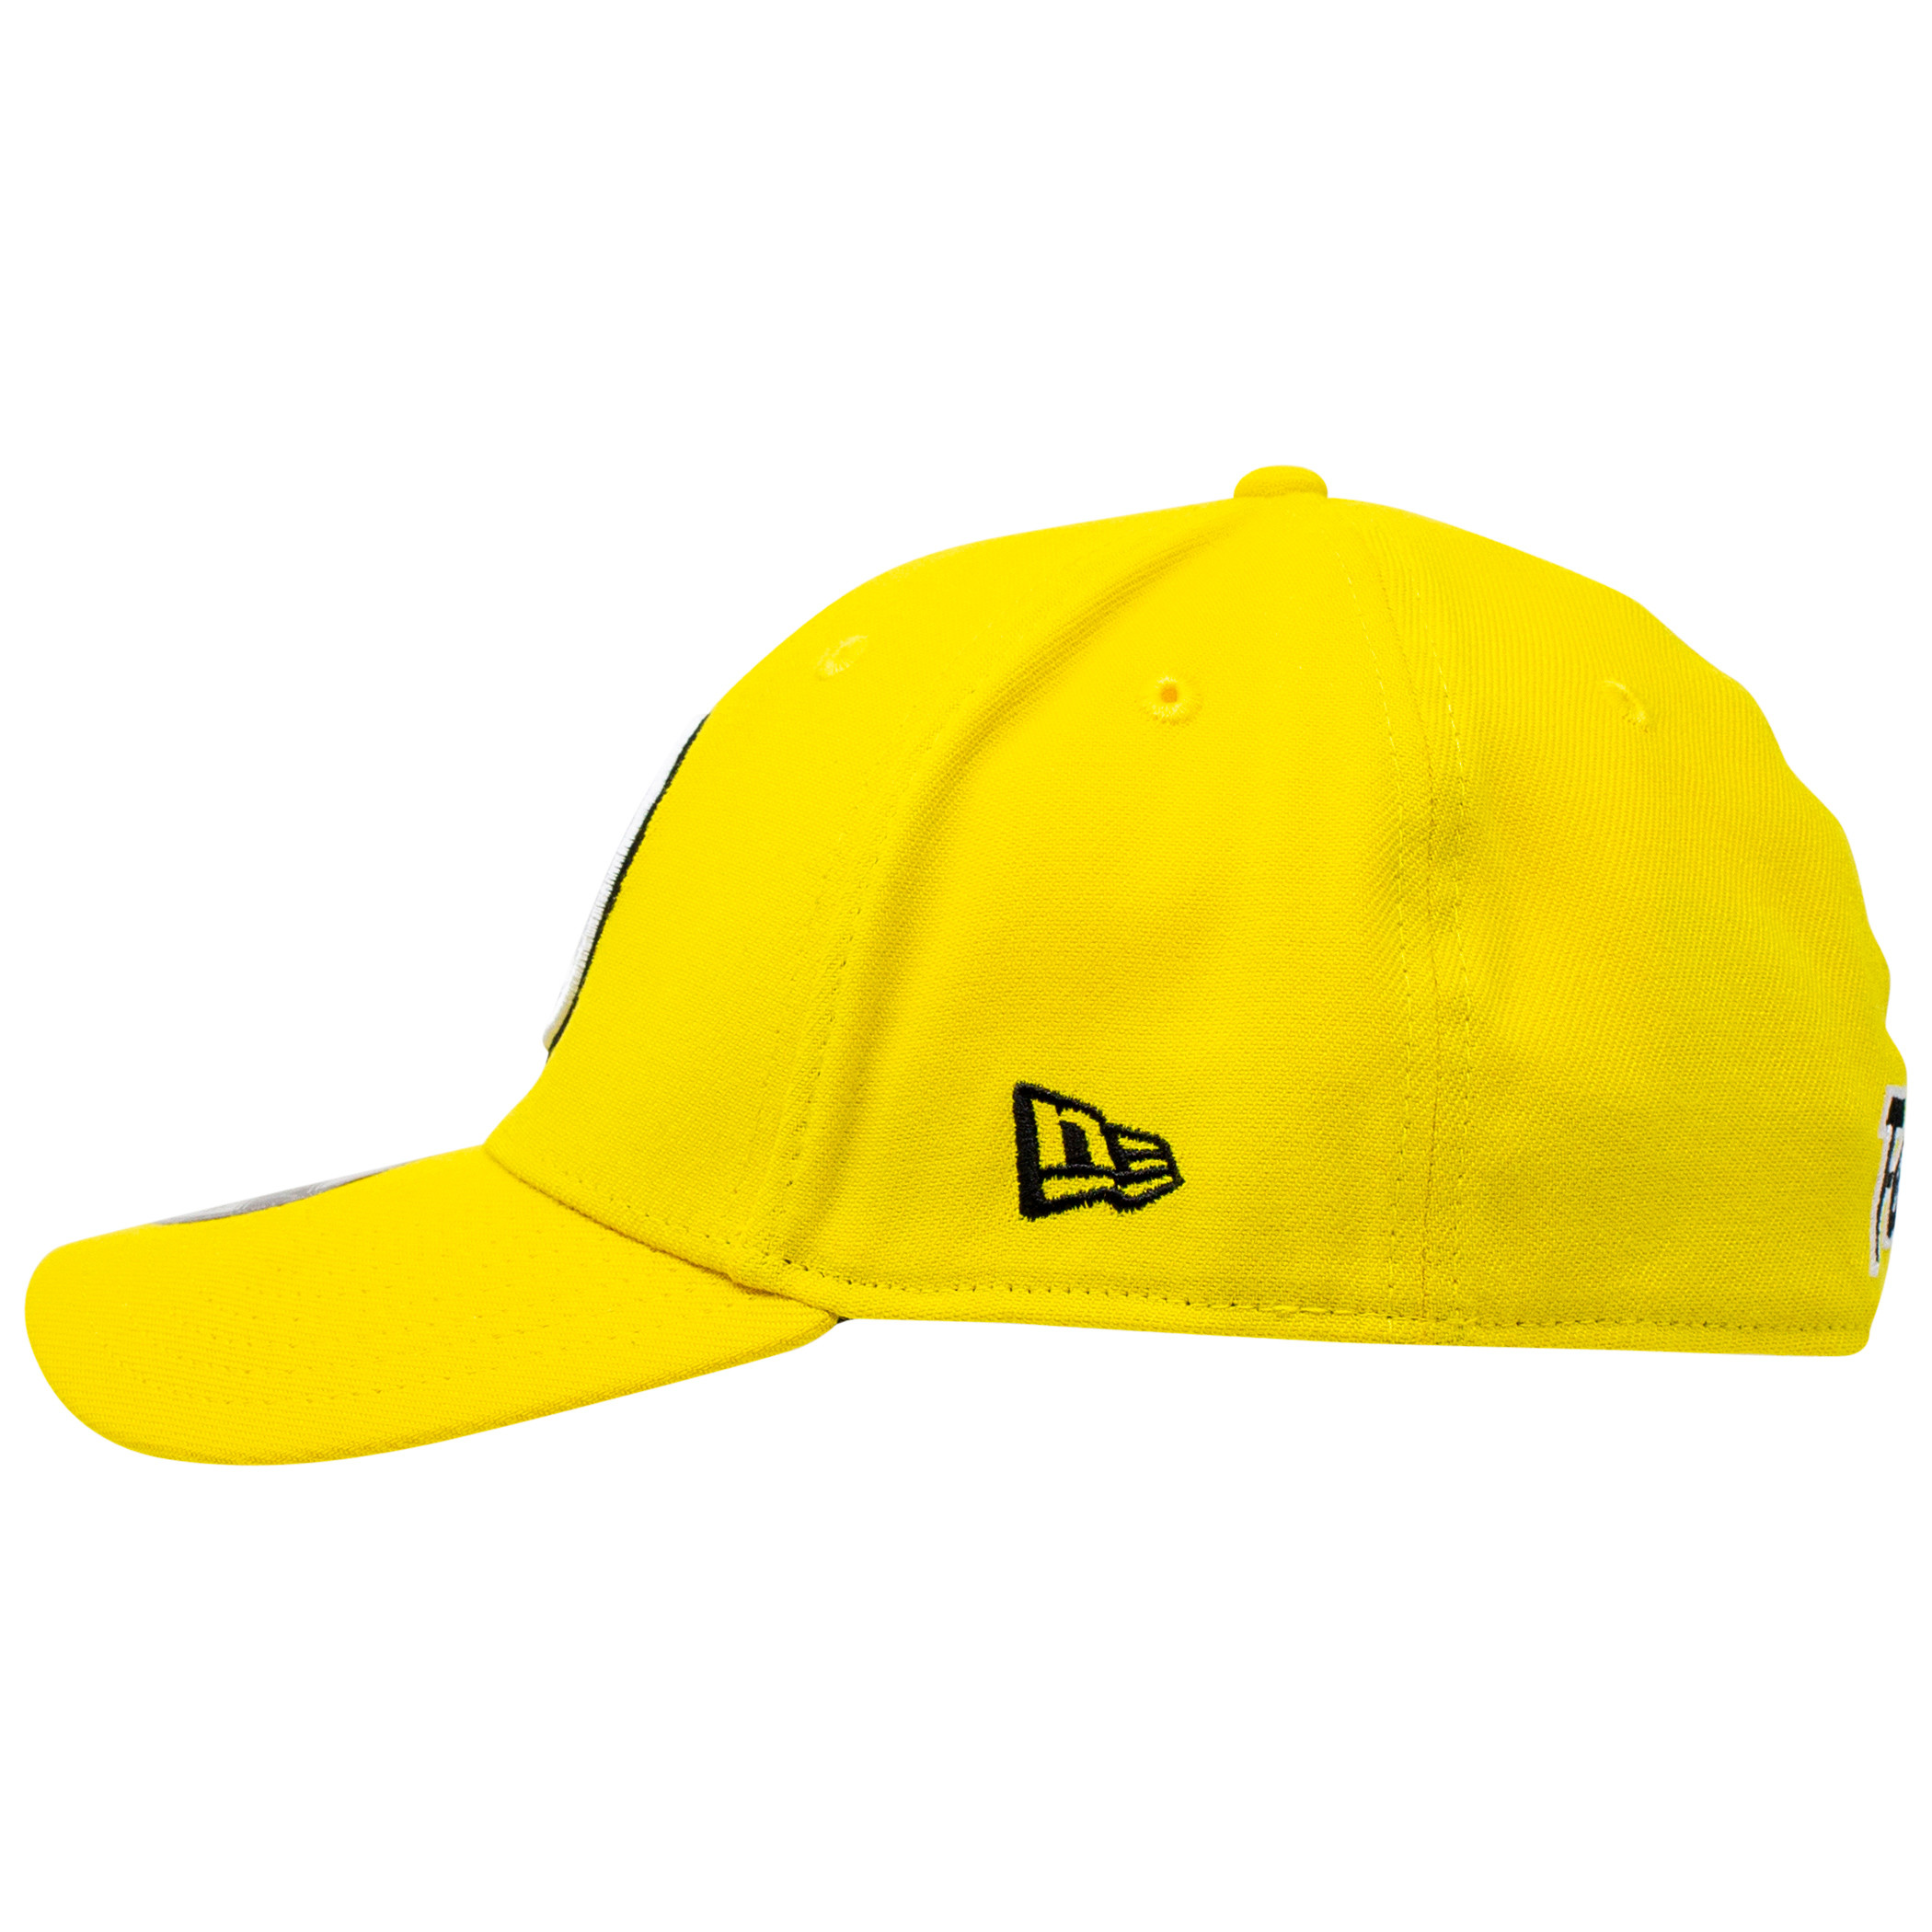 Yellow Lantern Sinestro Corp Color Block New Era 39Thirty Fitted Hat